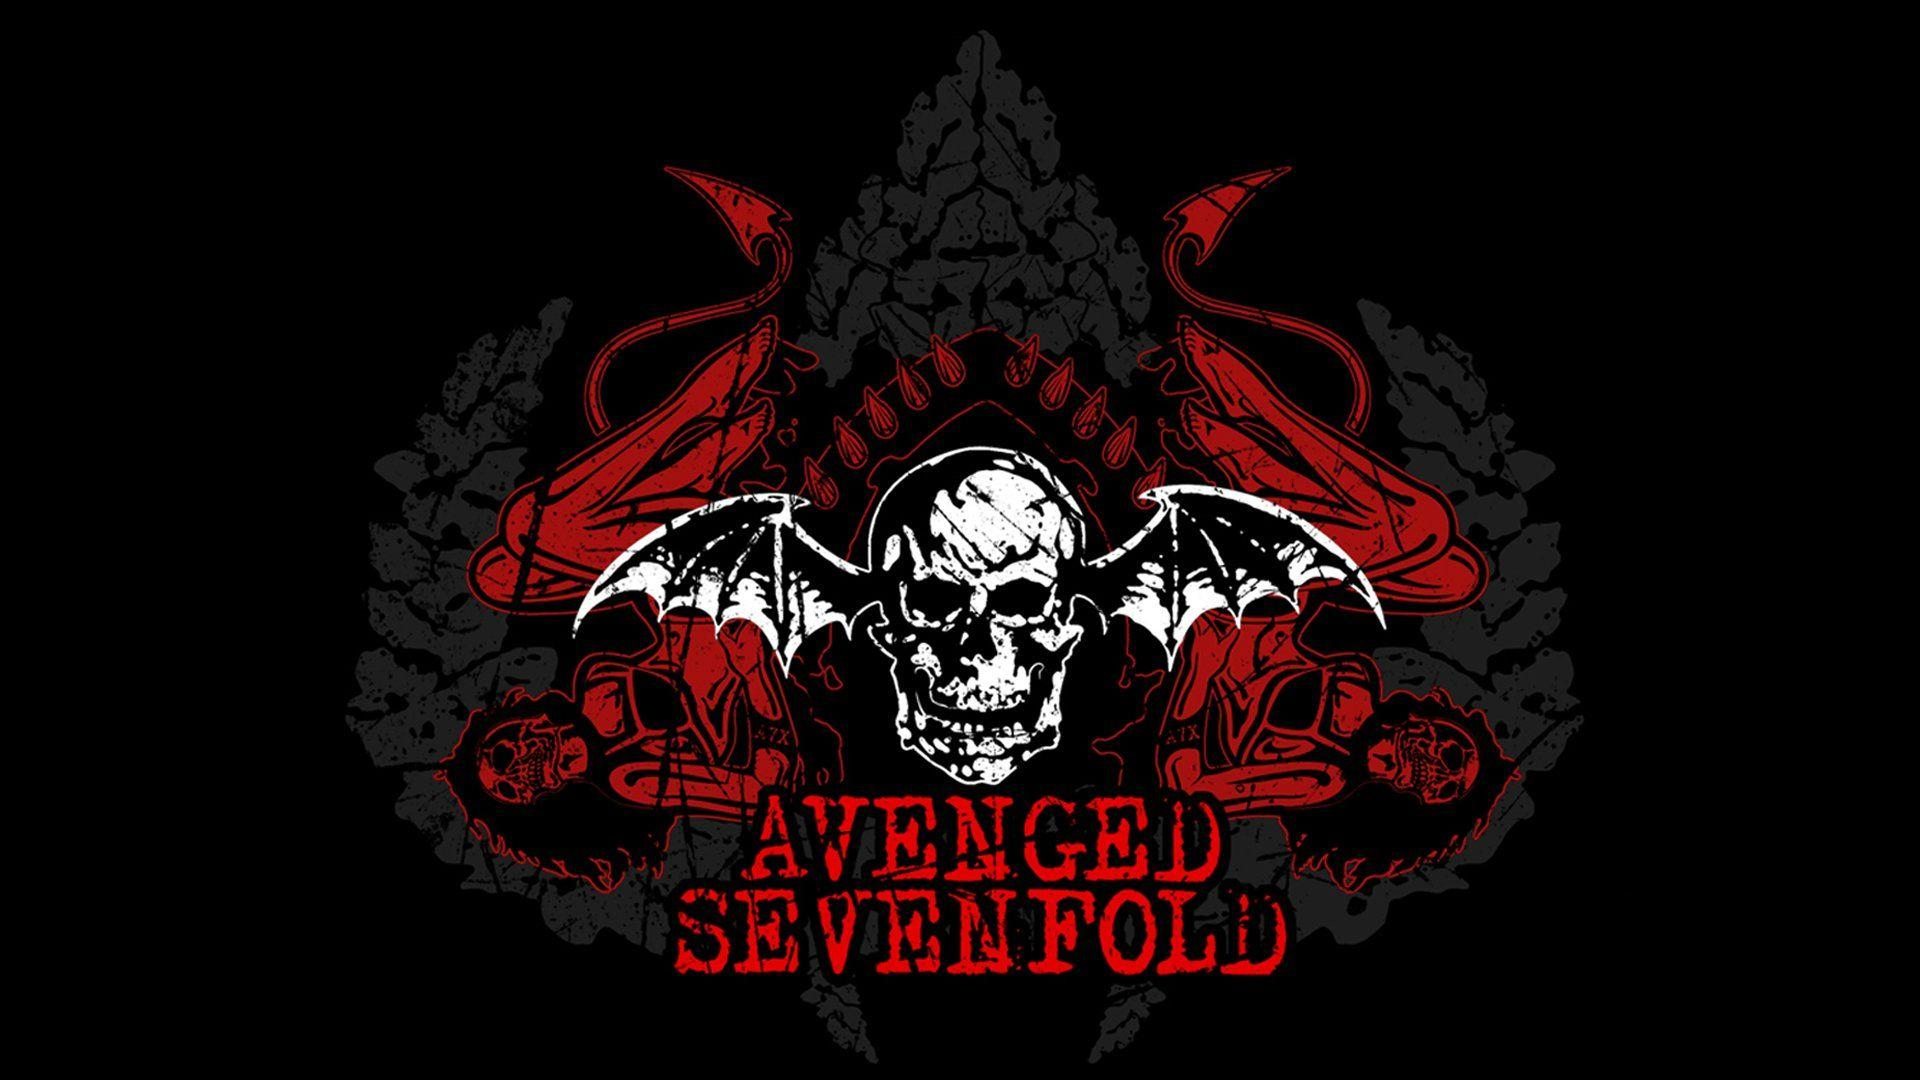 avenged sevenfold wallpapers Group with 75 items